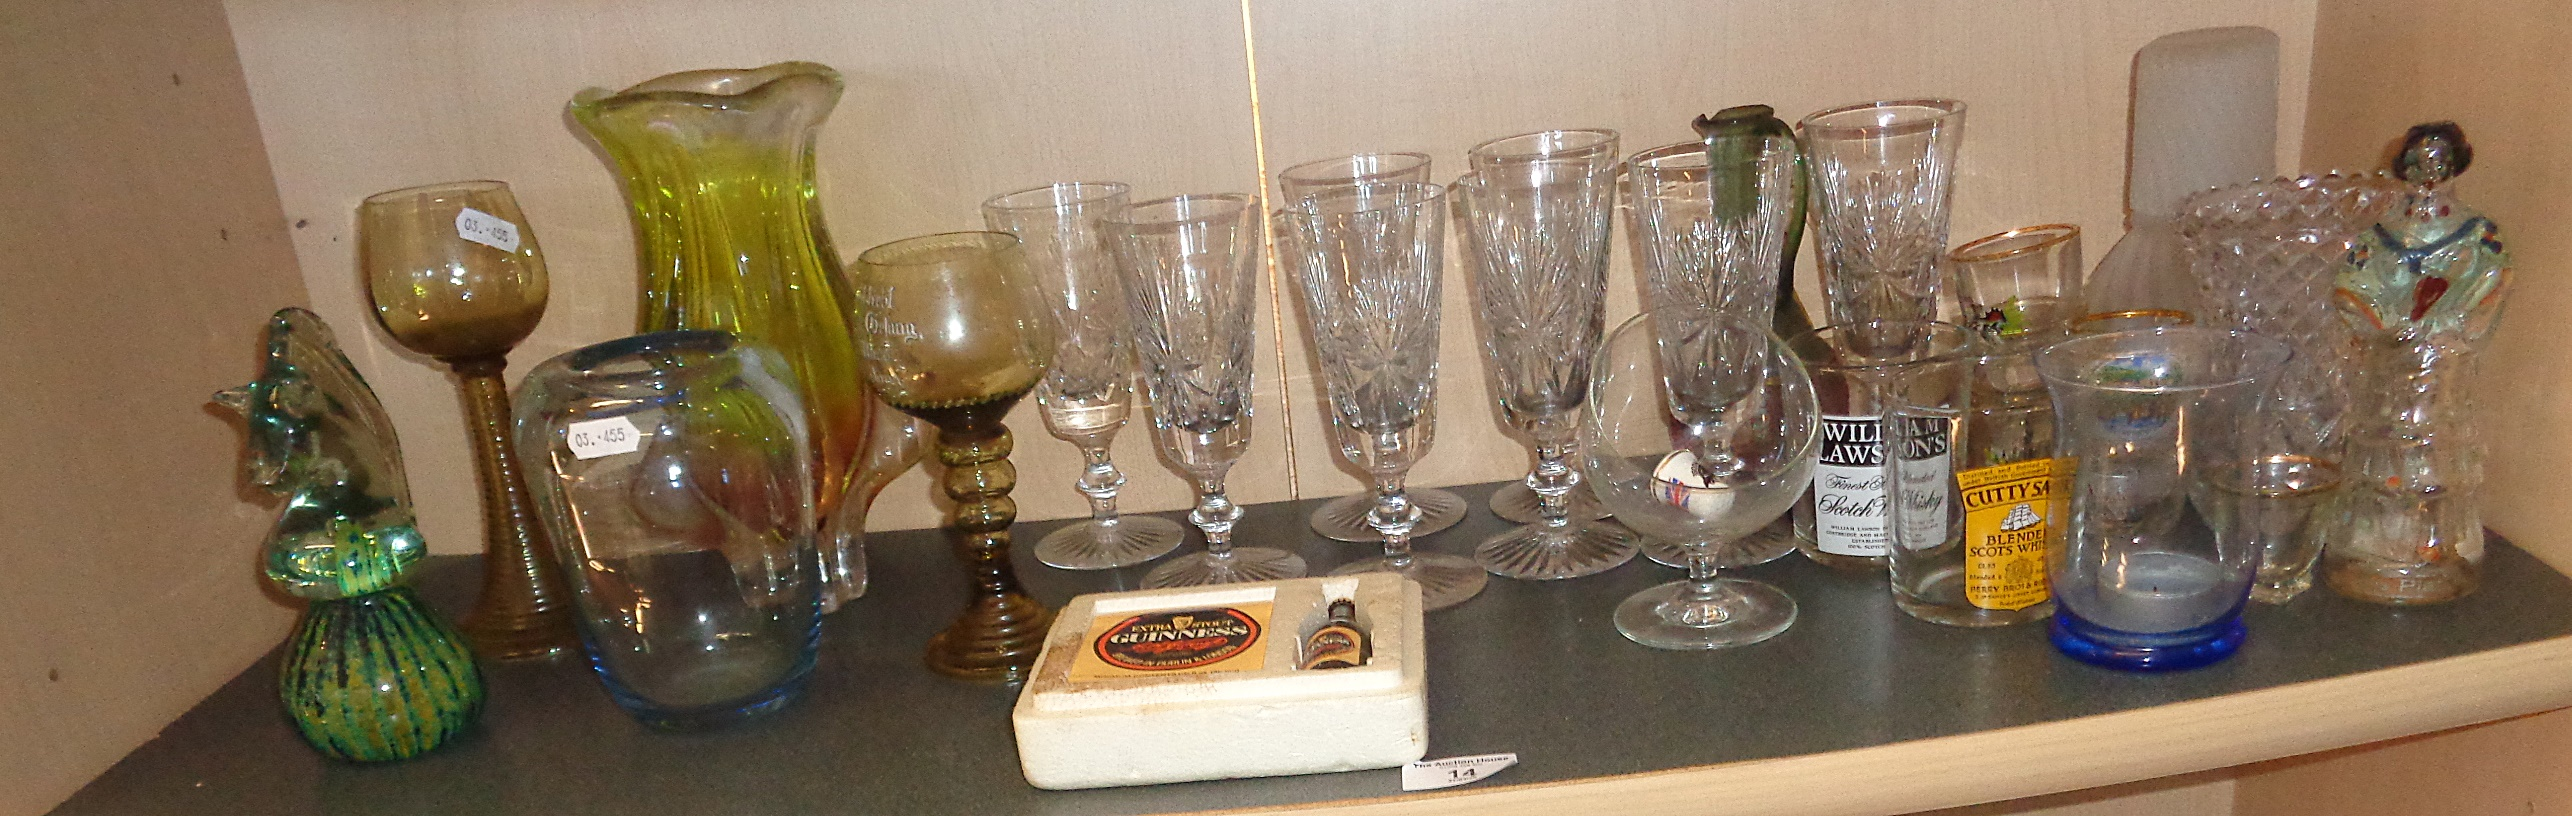 Lot 14 - Shelf of assorted glassware